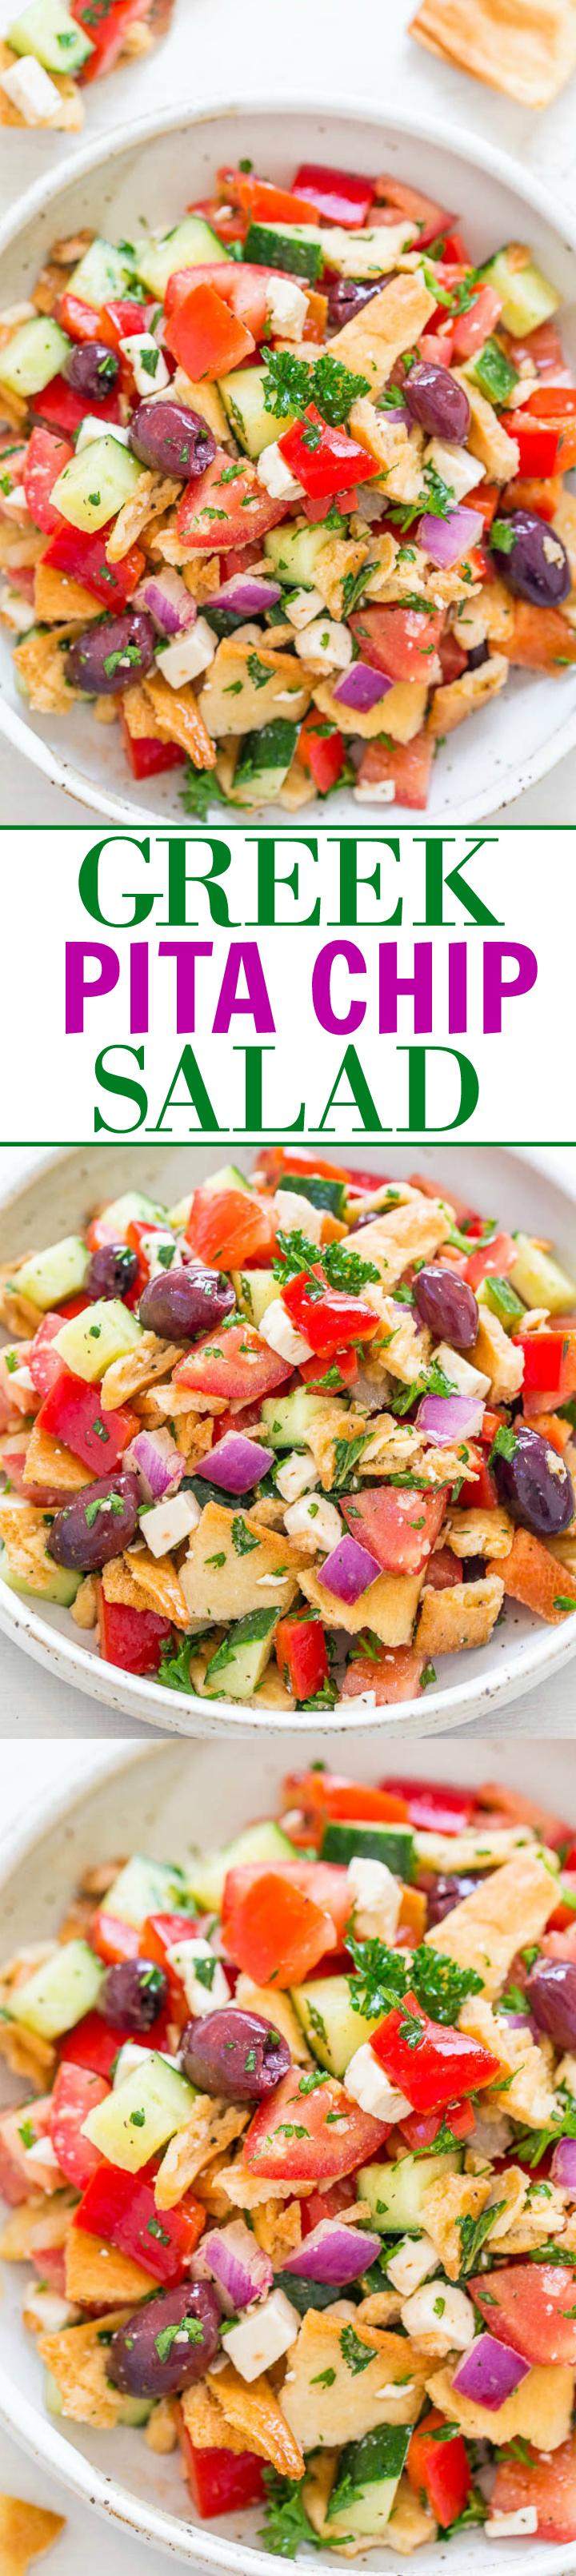 Greek Pita Chip Salad - Greek salad just got a makeover!! Still uses classic ingredients like red peppers, cucumbers, onions, olives, and feta but now there are PITA CHIPS for extra crunch and texture! EASY, HEALTHY, ready in 10 minutes!!